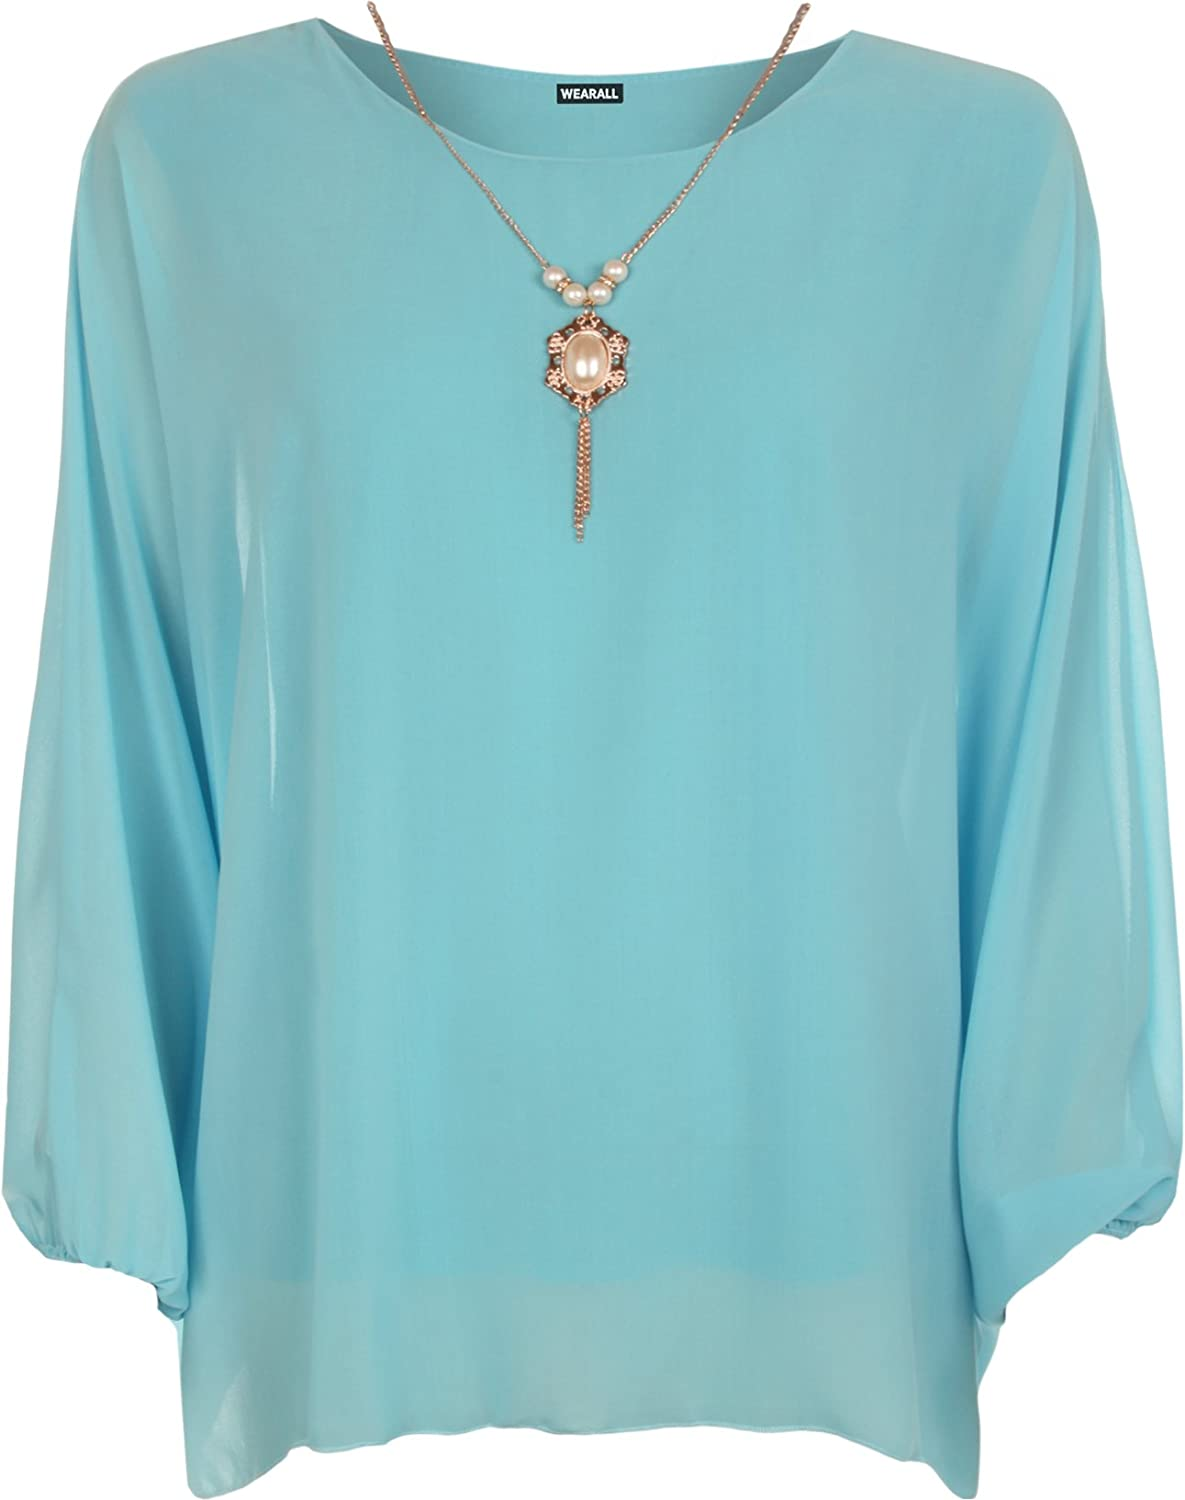 WearAll Plus Size Womens Chiffon Sheer Lined Necklace Ladies Batwing Sleeve  Top 14-18: Amazon.co.uk: Clothing